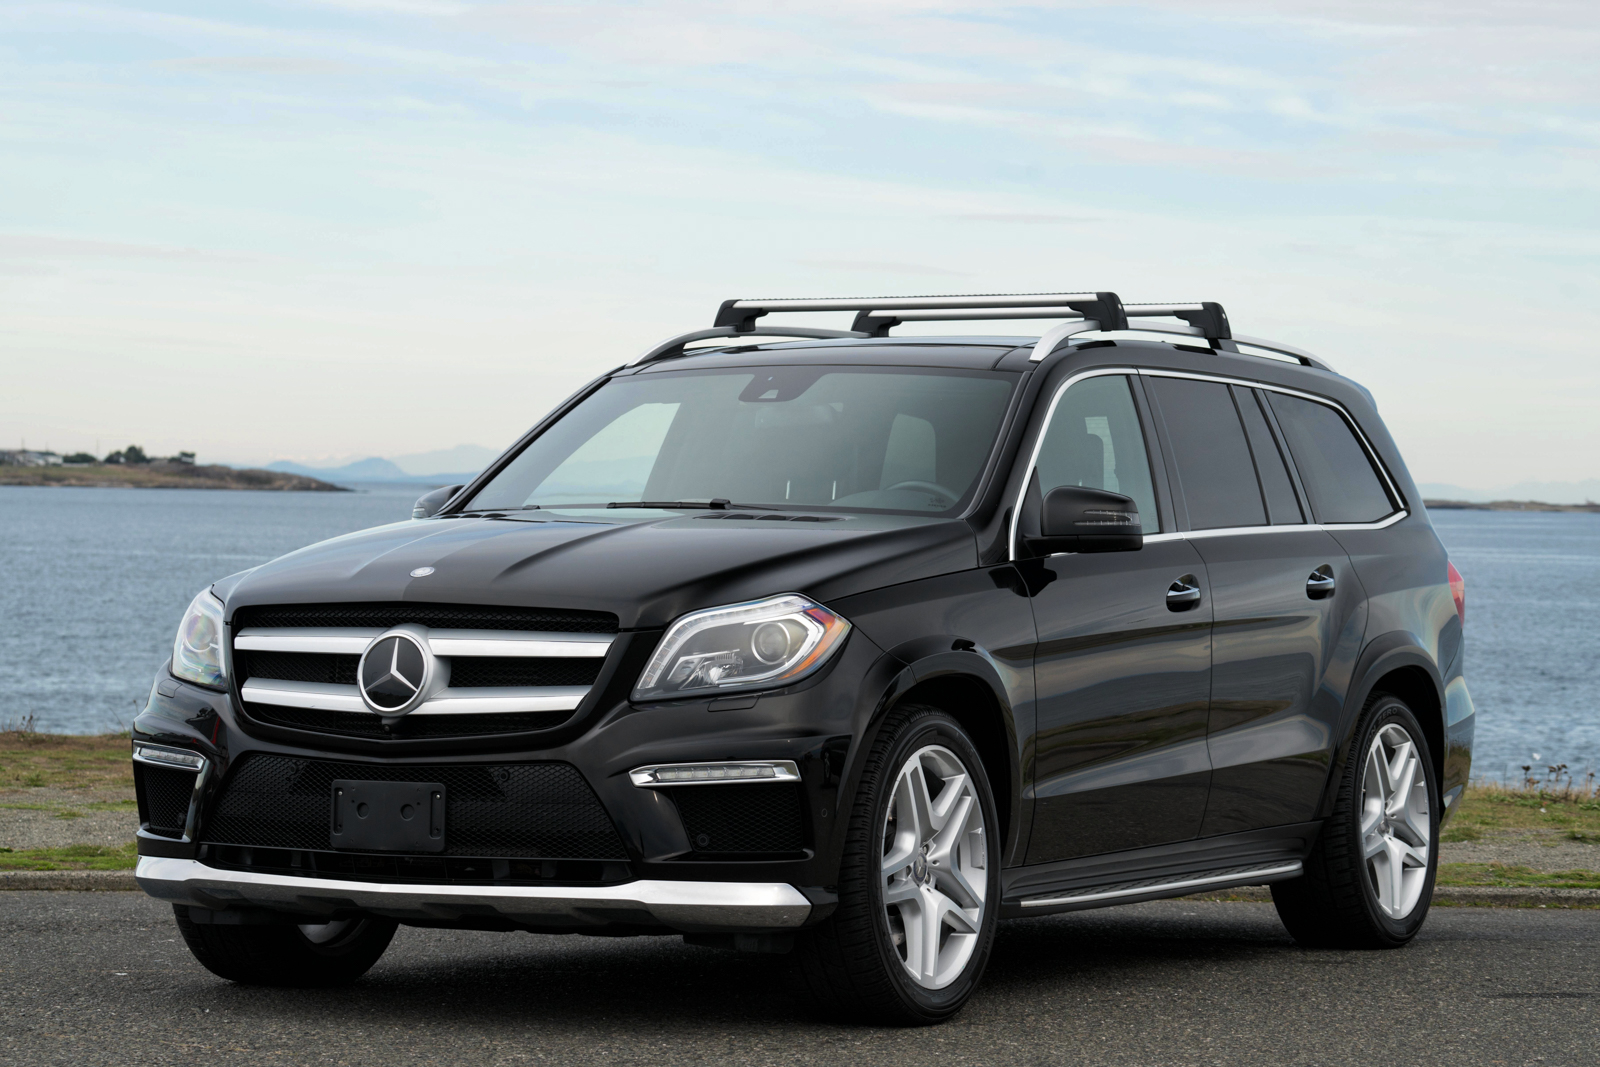 2014 Mercedes-Benz GL350 BlueTEC 4MATIC for sale